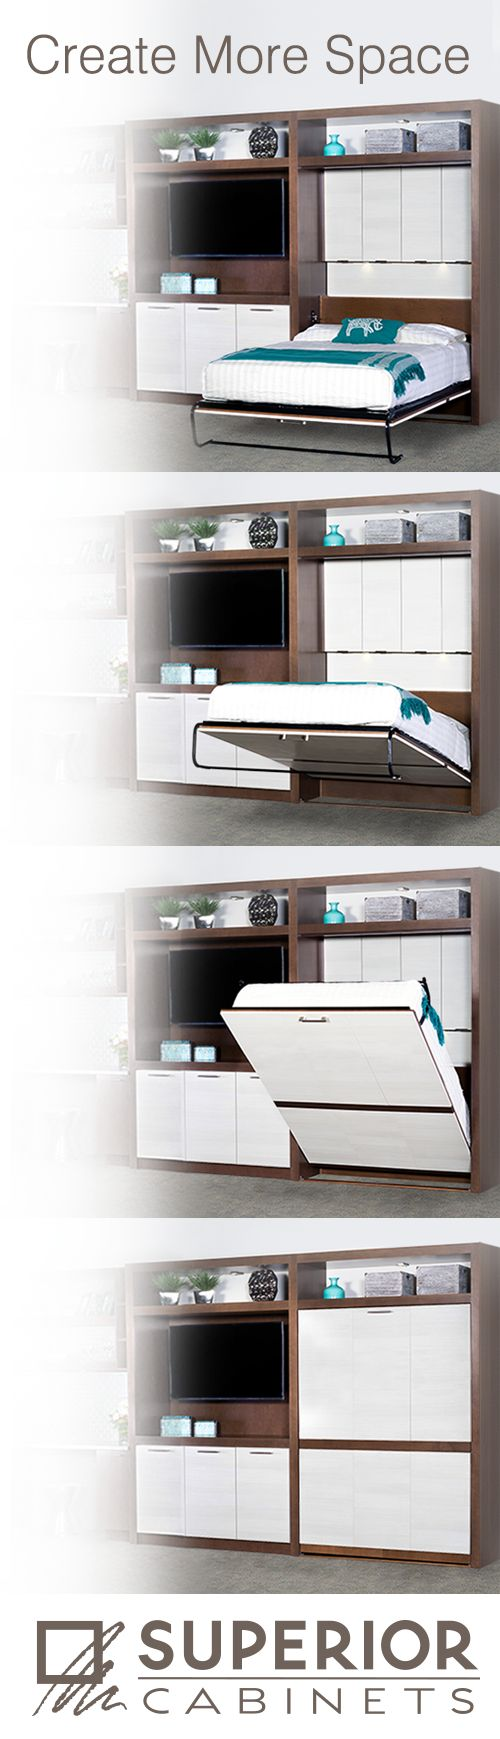 Custom murphy beds edmonton wall beds canada custom wall beds - View Murphy Wall Bed Sizes And Dimensions Here We Offer A Variety Of Style And Cabinet Options For Small Spaces Looking For Hide A Bed Solutions